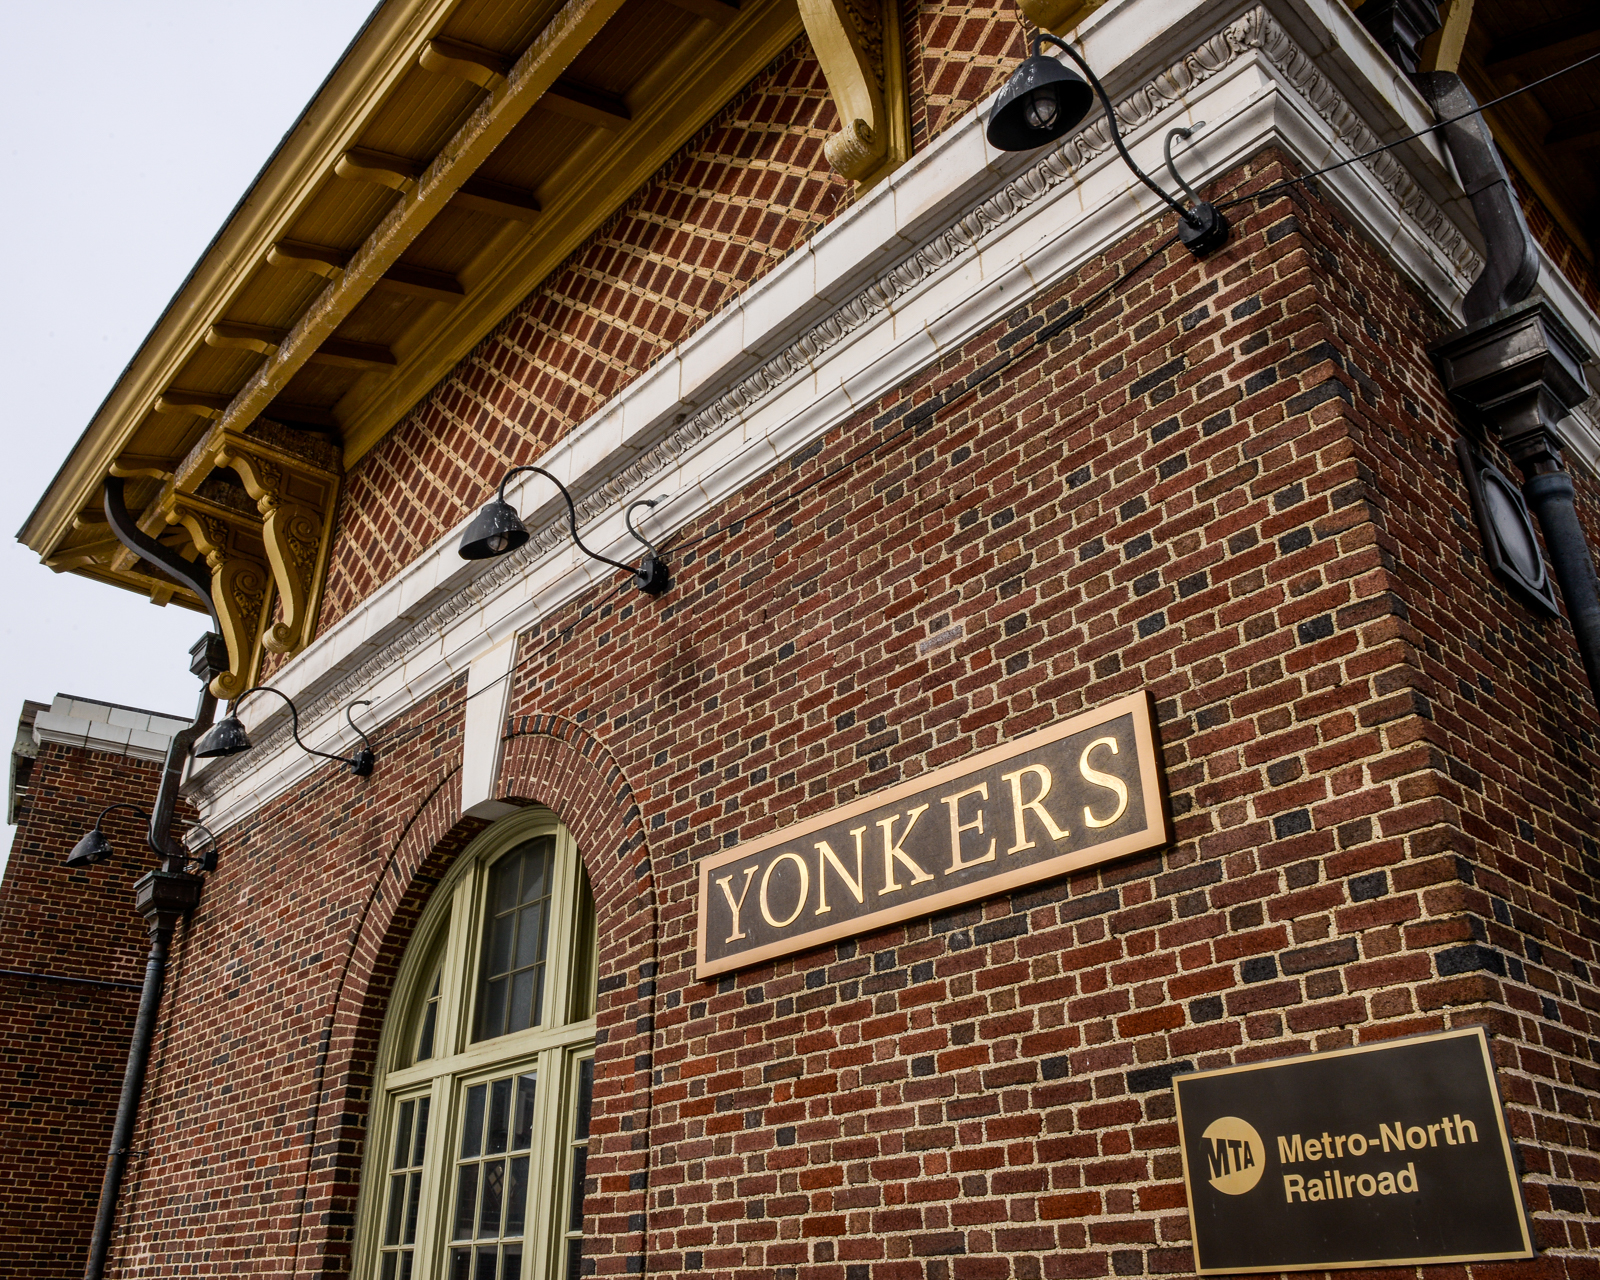 Yonkers Train Station